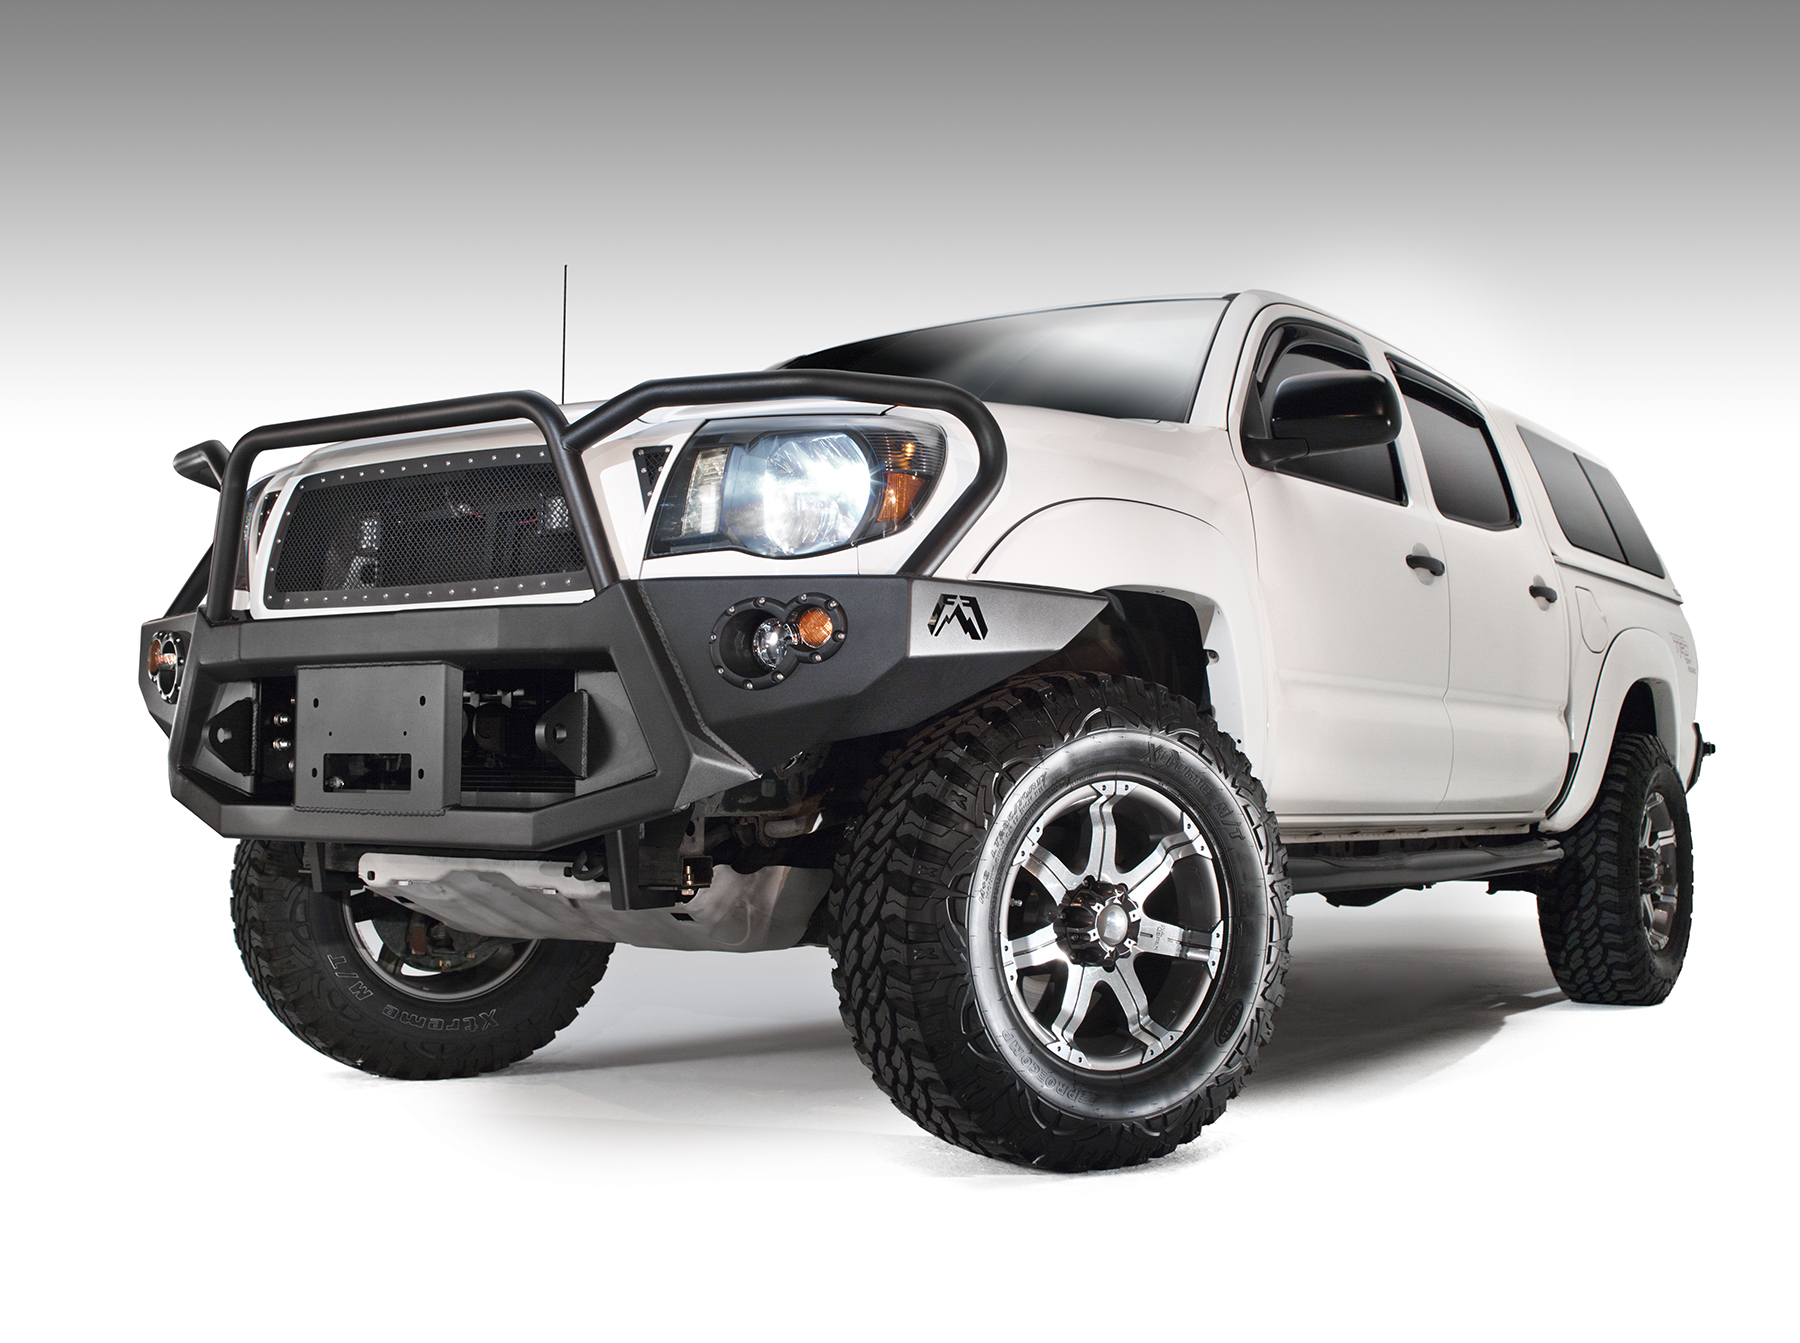 TT05 B1550 1 bumpers pure tacoma accessories, parts and accessories for your 2002 Tacoma Off-Road Bumper at nearapp.co